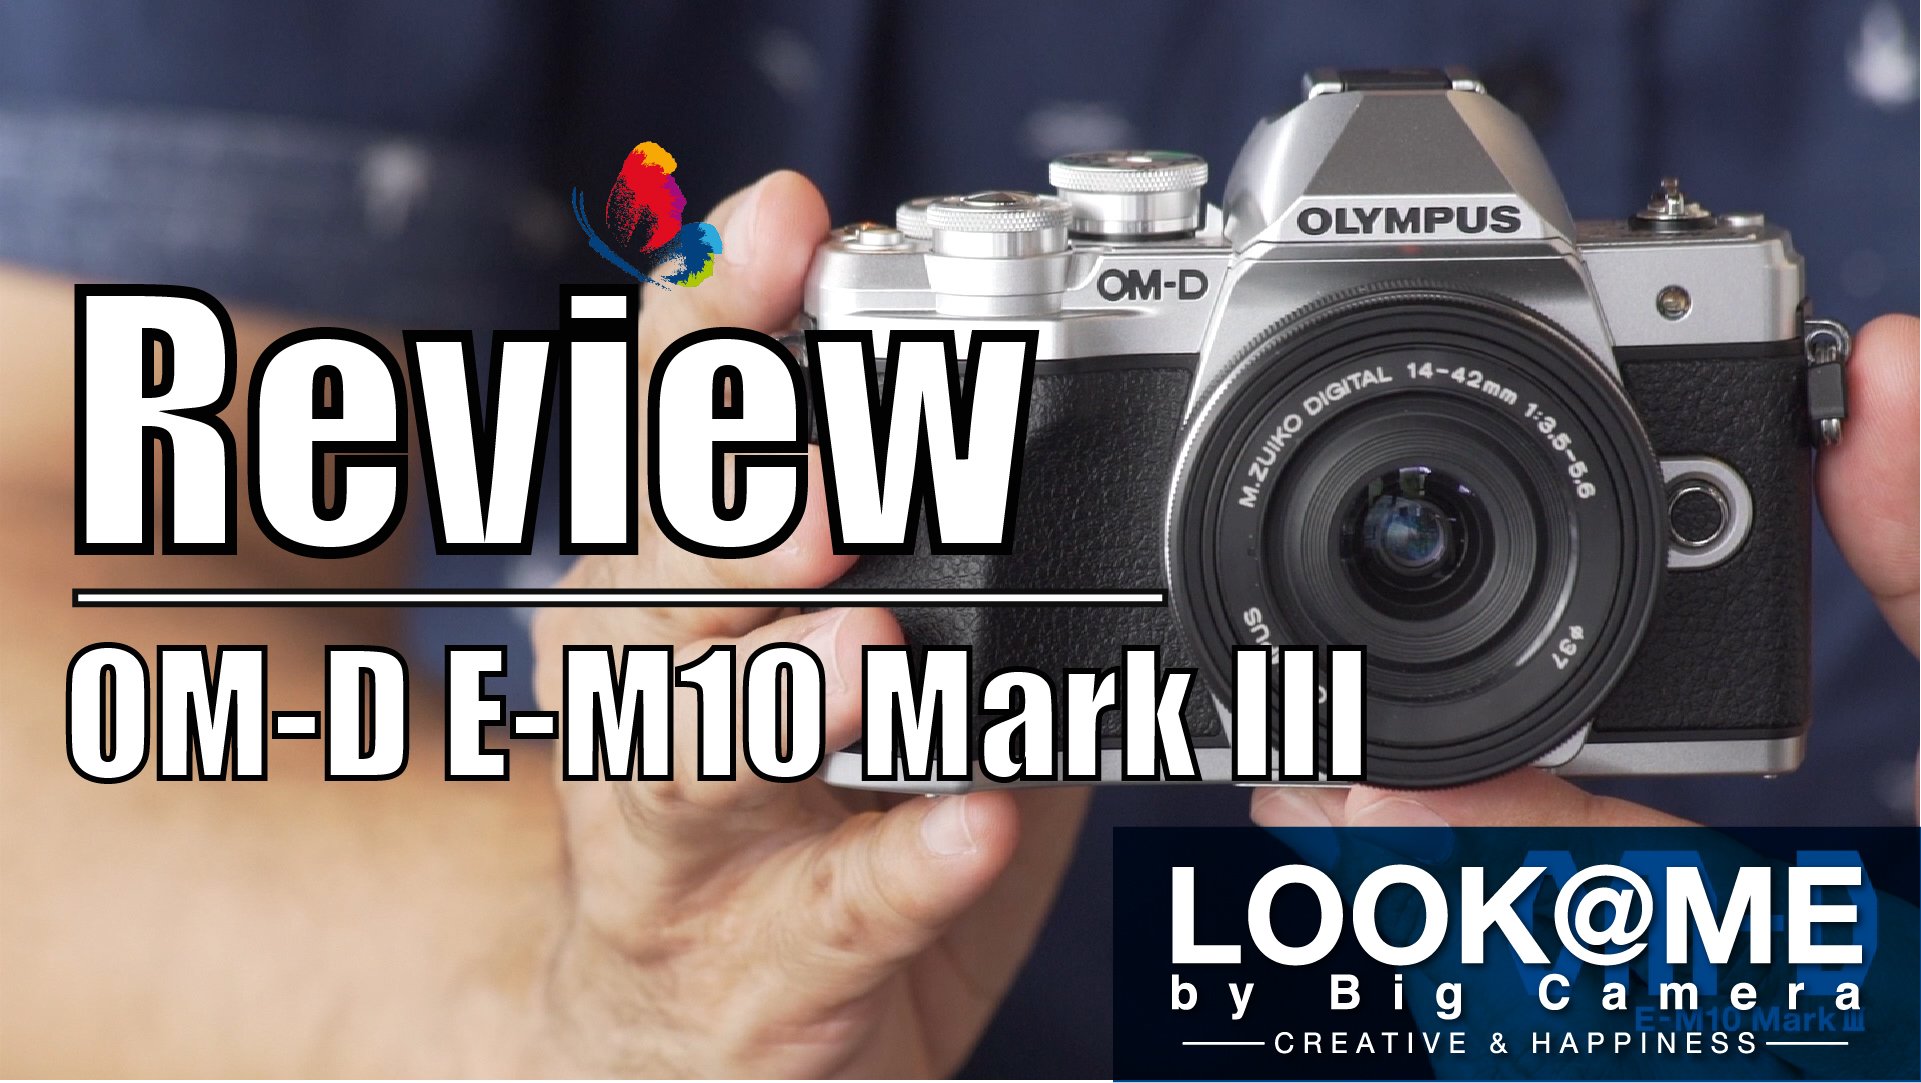 Review Olympus OM D E M10 Mark III